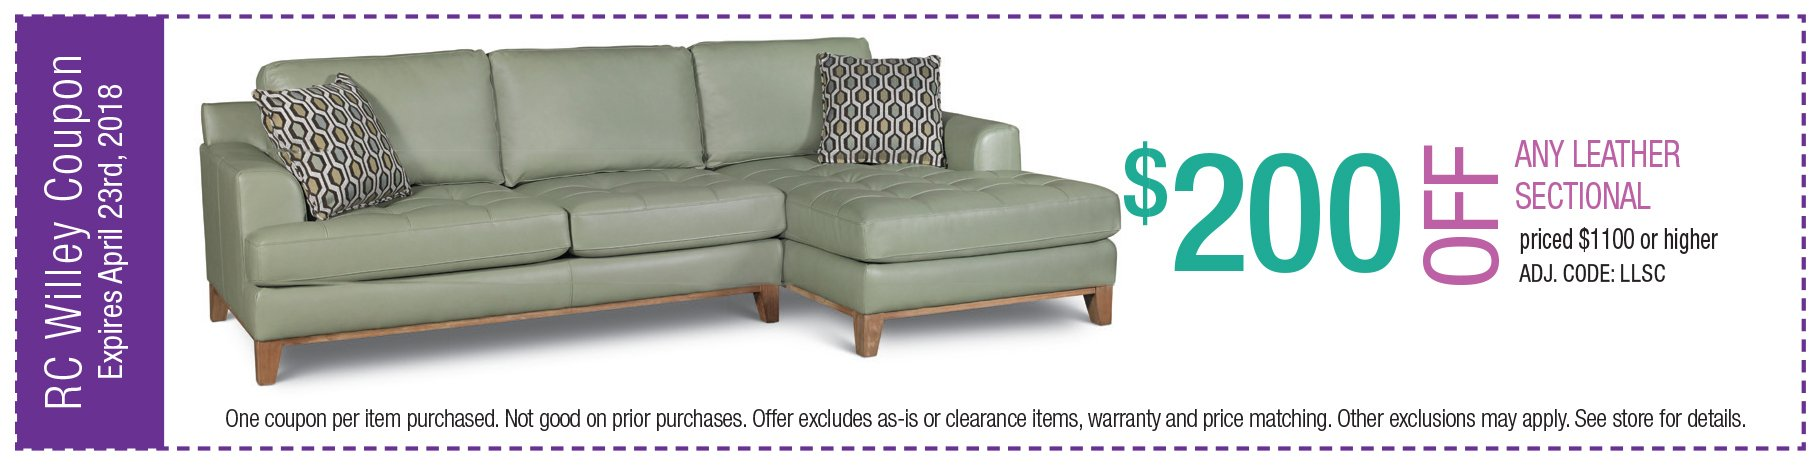 $200 off any leather sectional $1100 or higher